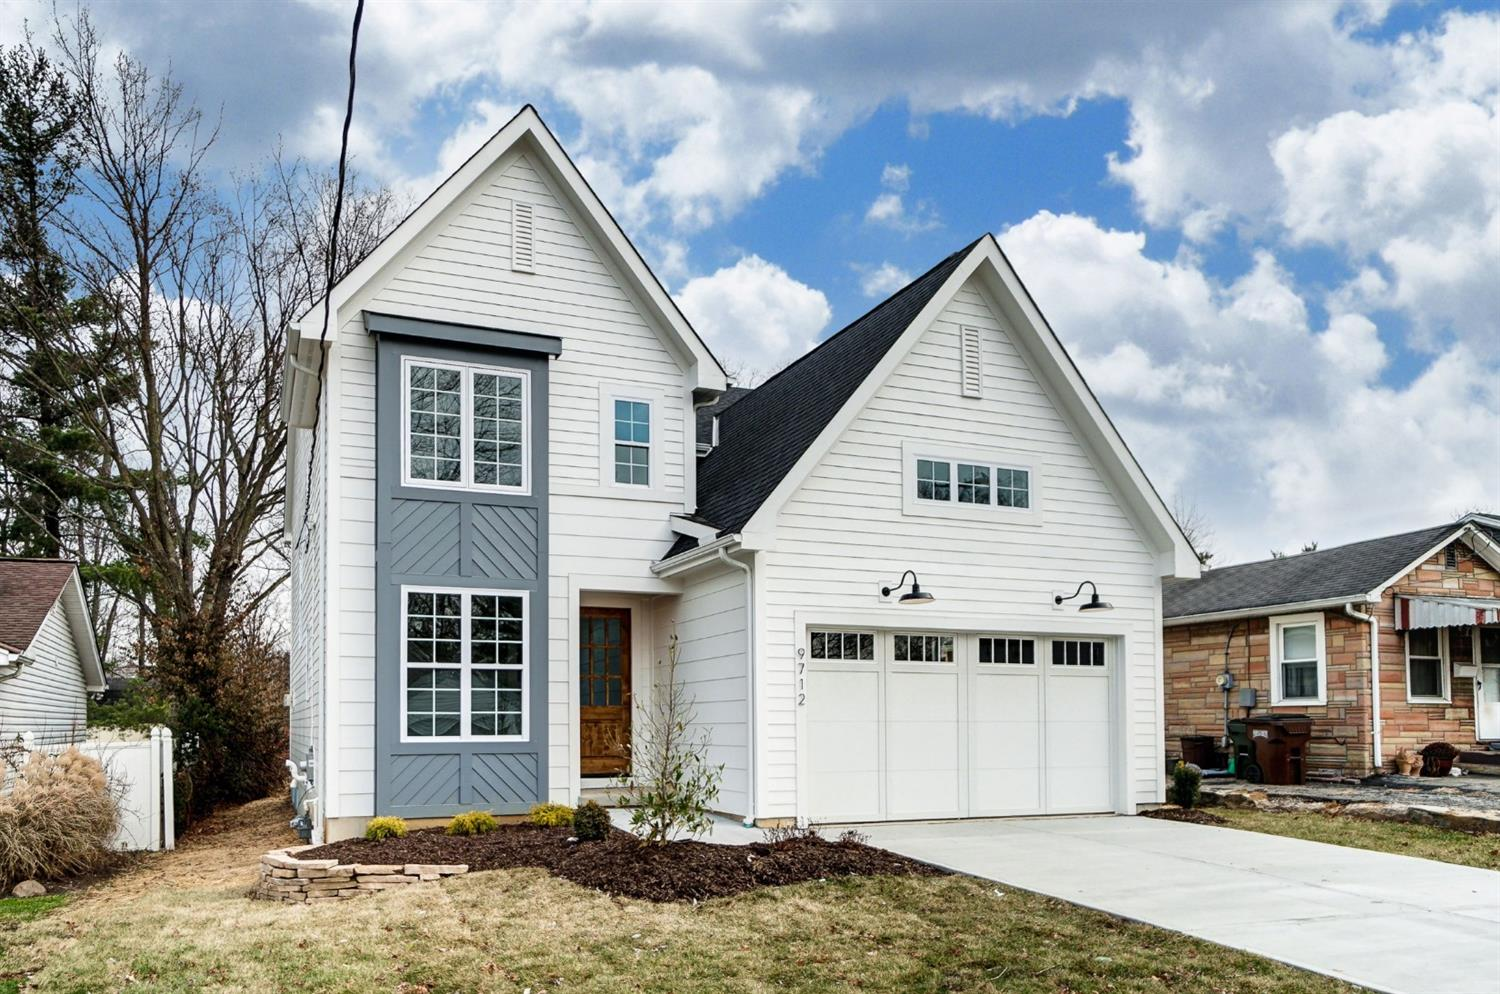 Photo 2 for 9712 Monroe Ave Blue Ash, OH 45242